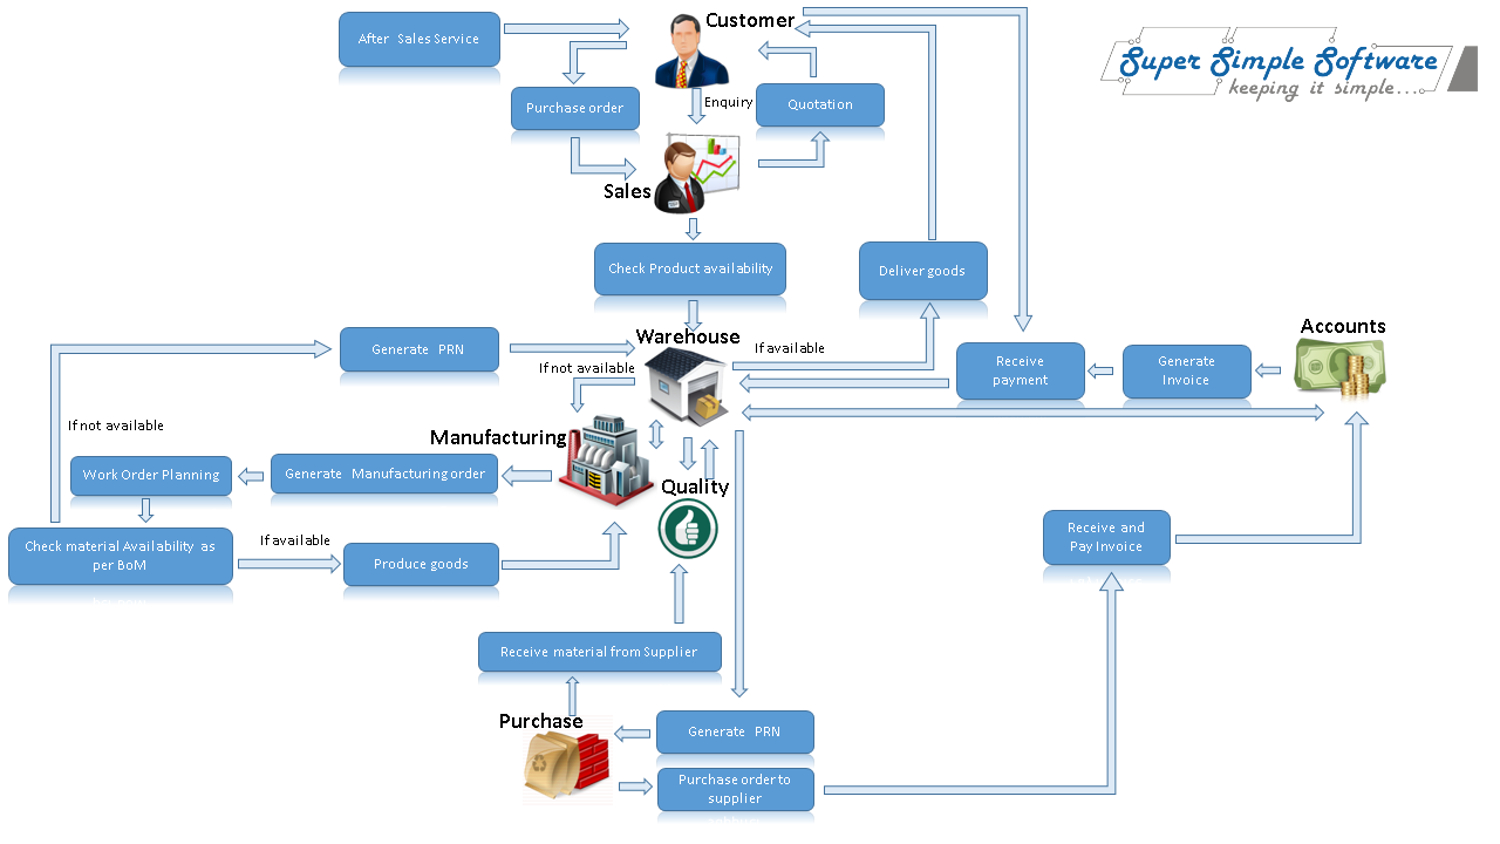 SuperSimpleSoftware-BusinessCenter-Manufacturing-cycle